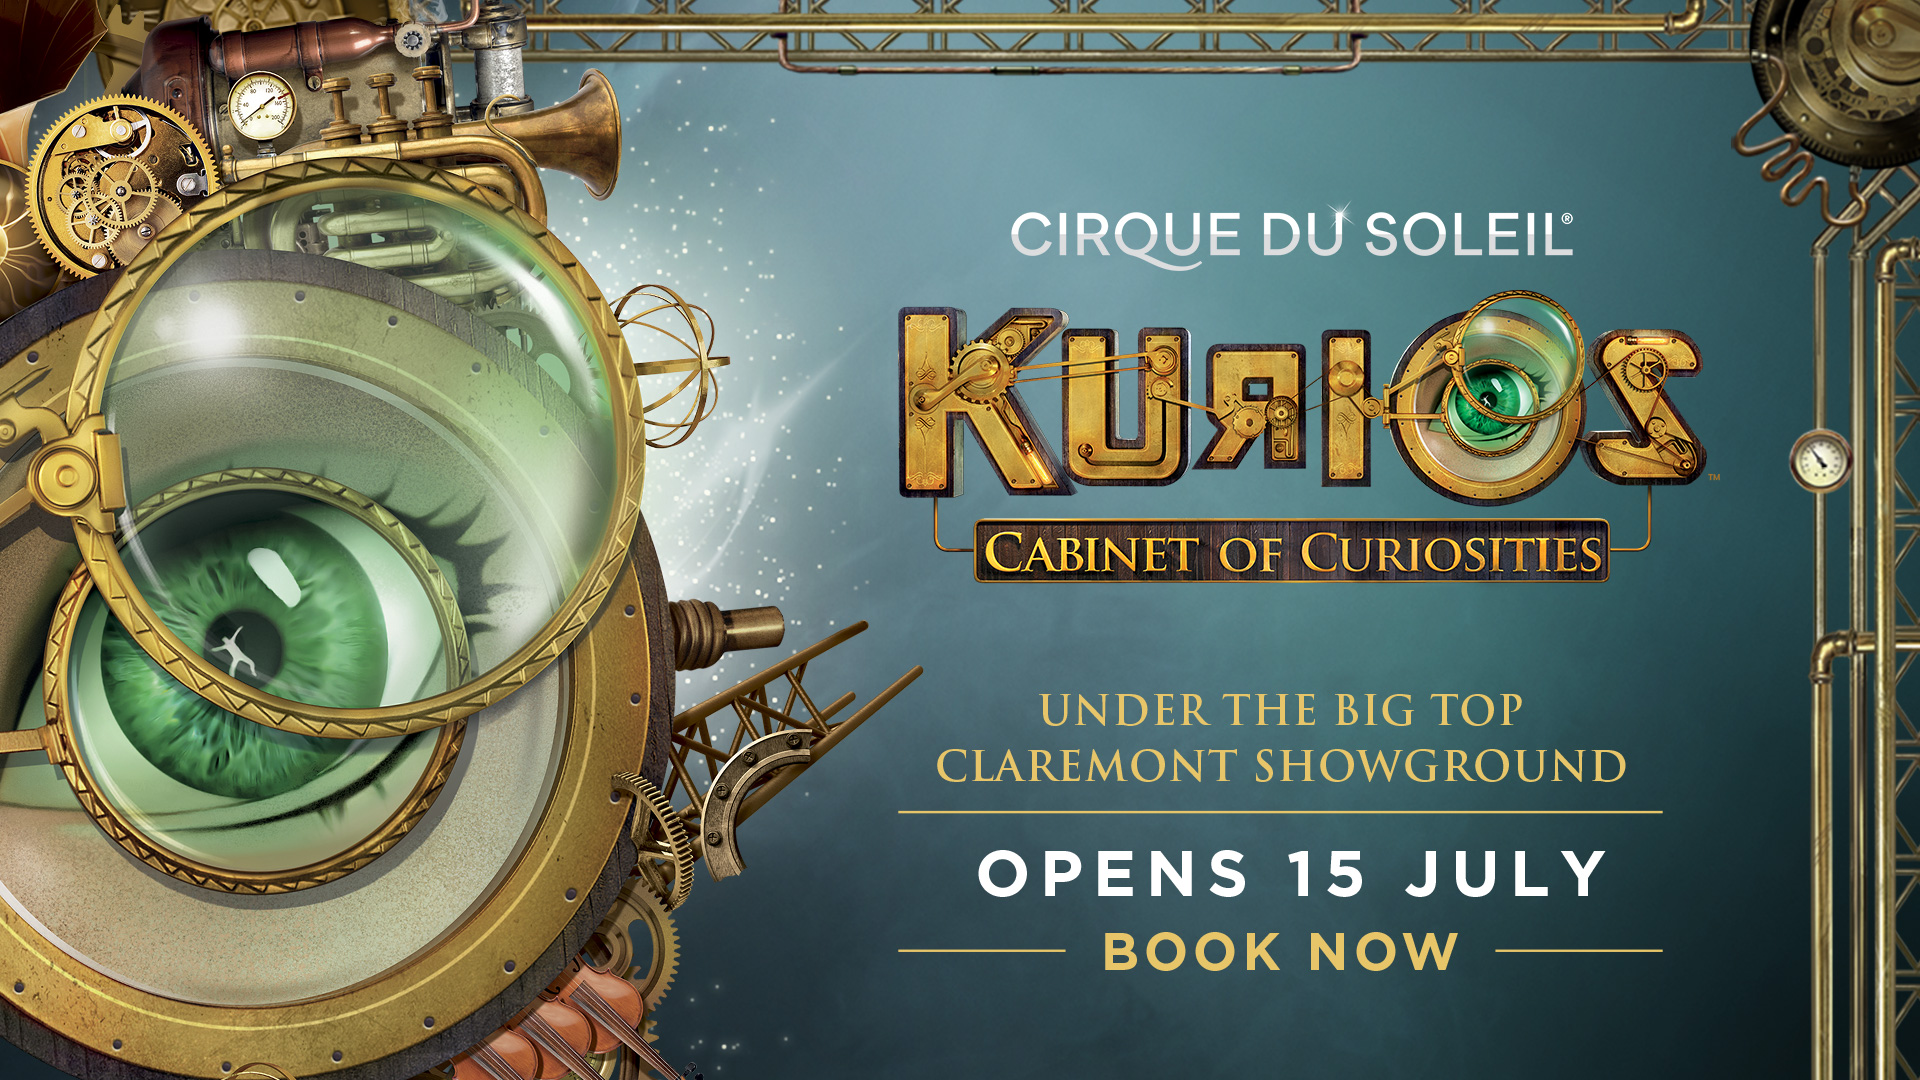 Cirque du Soleil coming to Claremont Showground